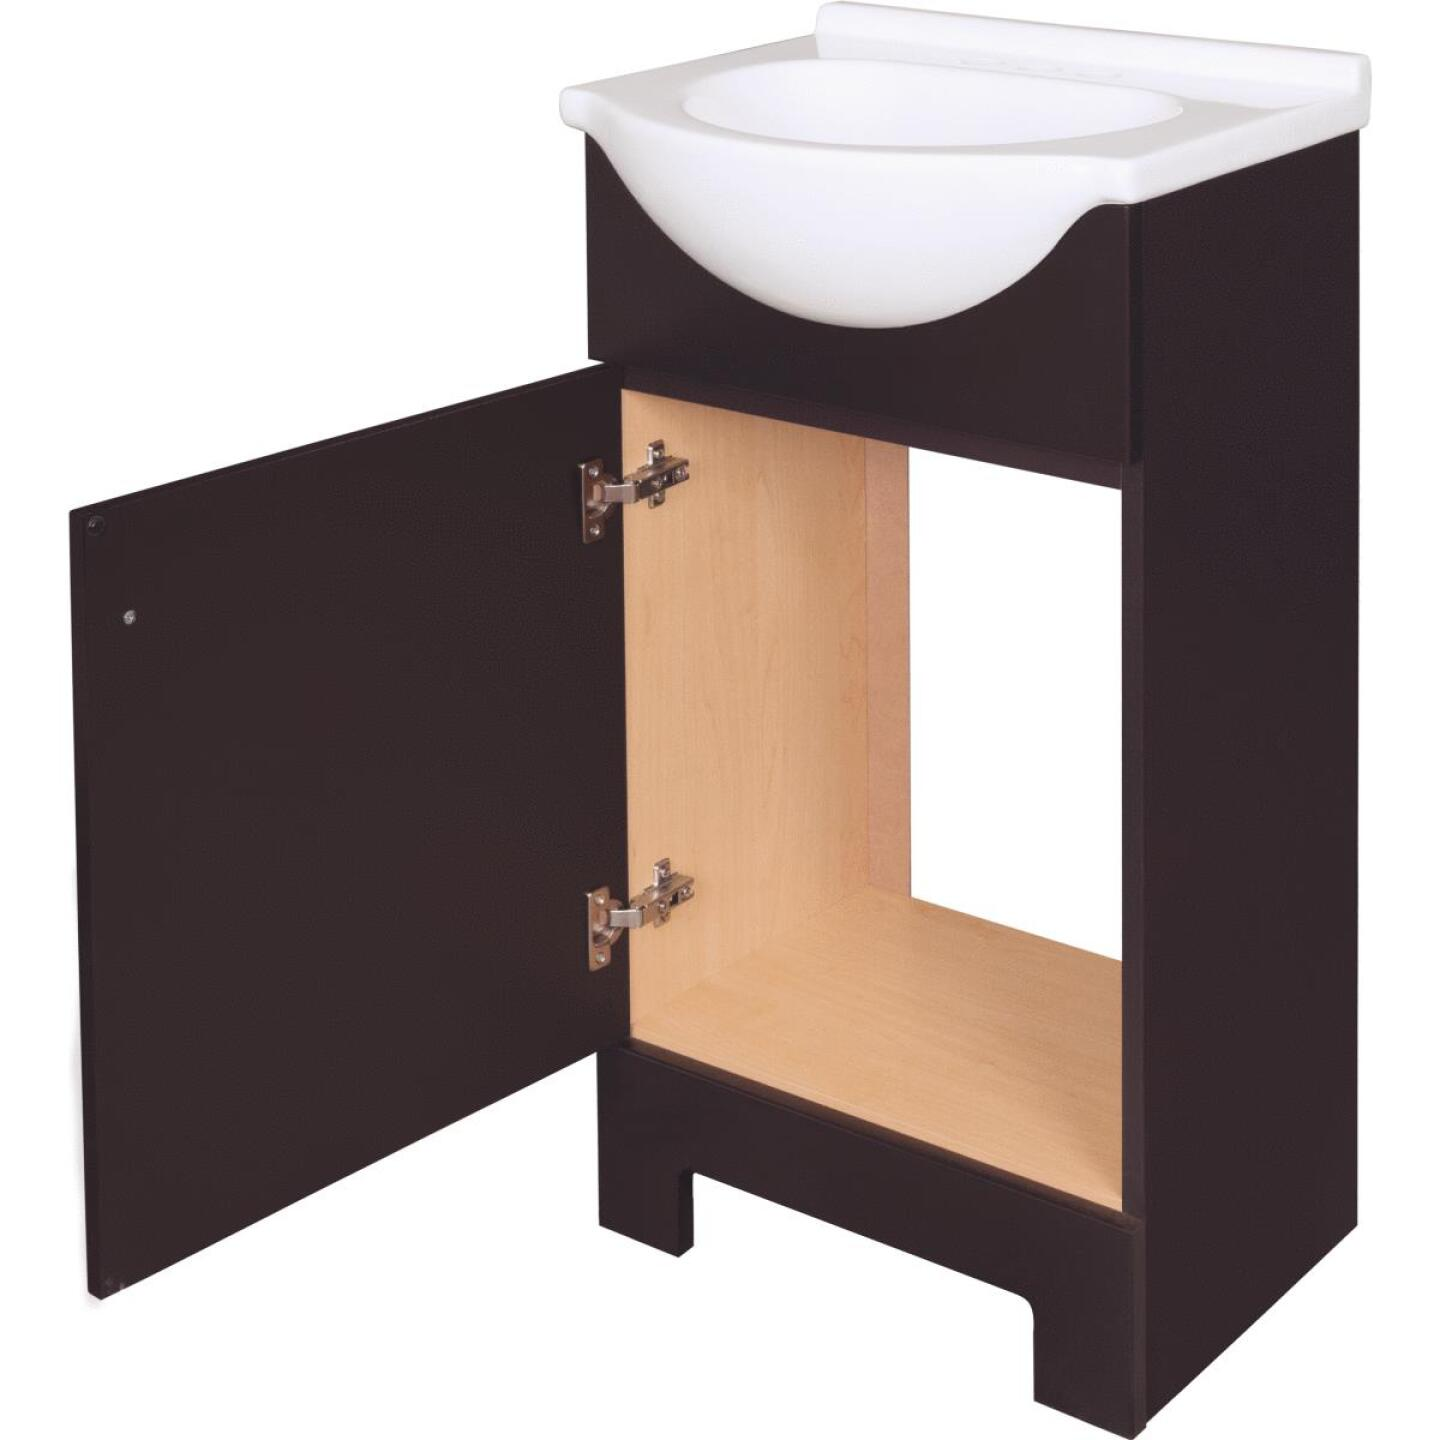 Continental Cabinets European Espresso 18 In. W x 33-1/2 In. H x 12-1/2 In. D Vanity with Cultured Marble Top Image 5